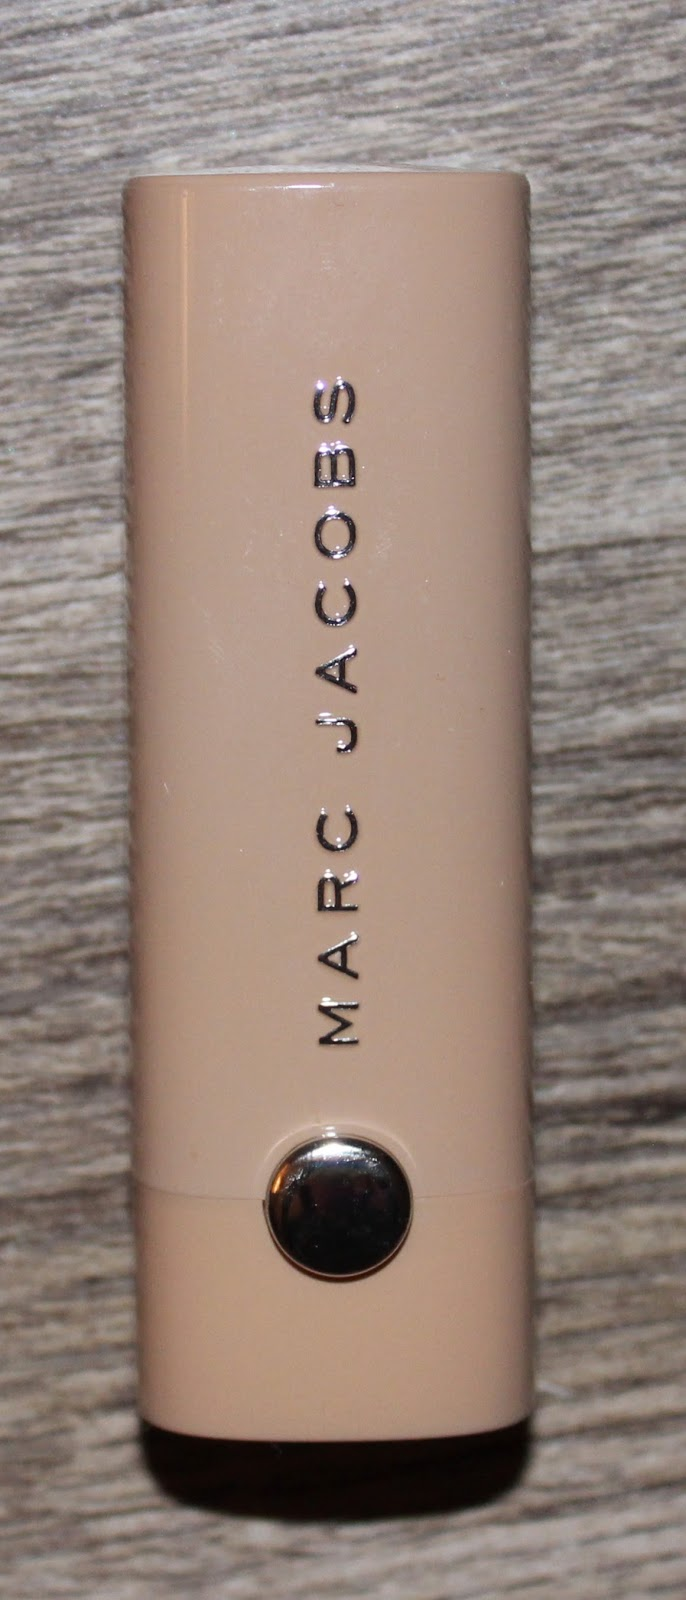 Marc Jacobs New Nudes Sheer Lip Gel